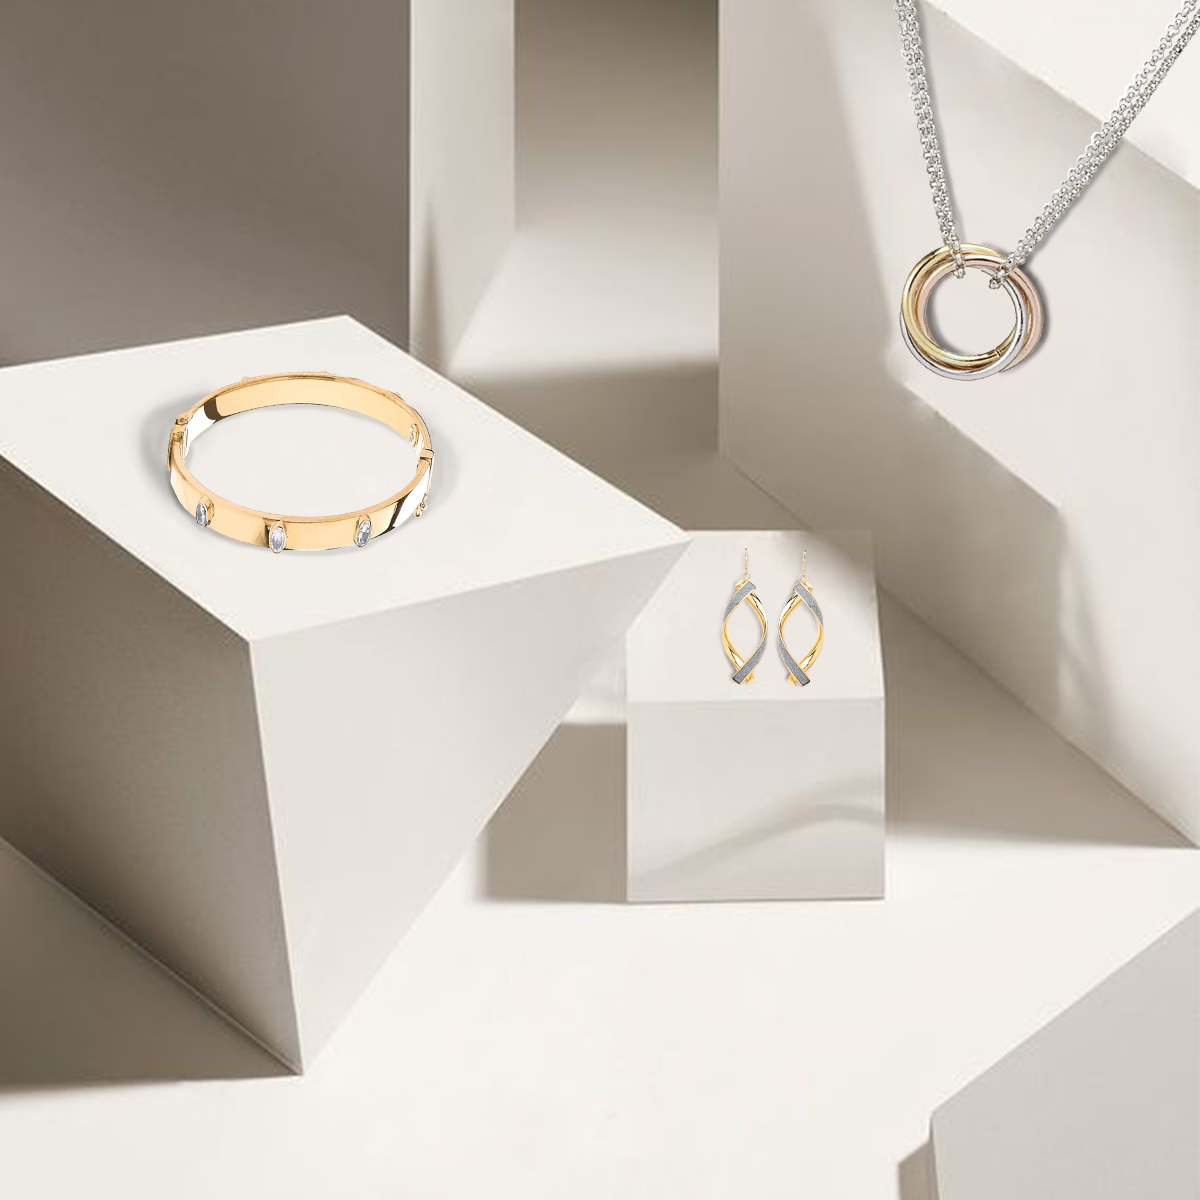 Top Five Timeless Gifts for Women